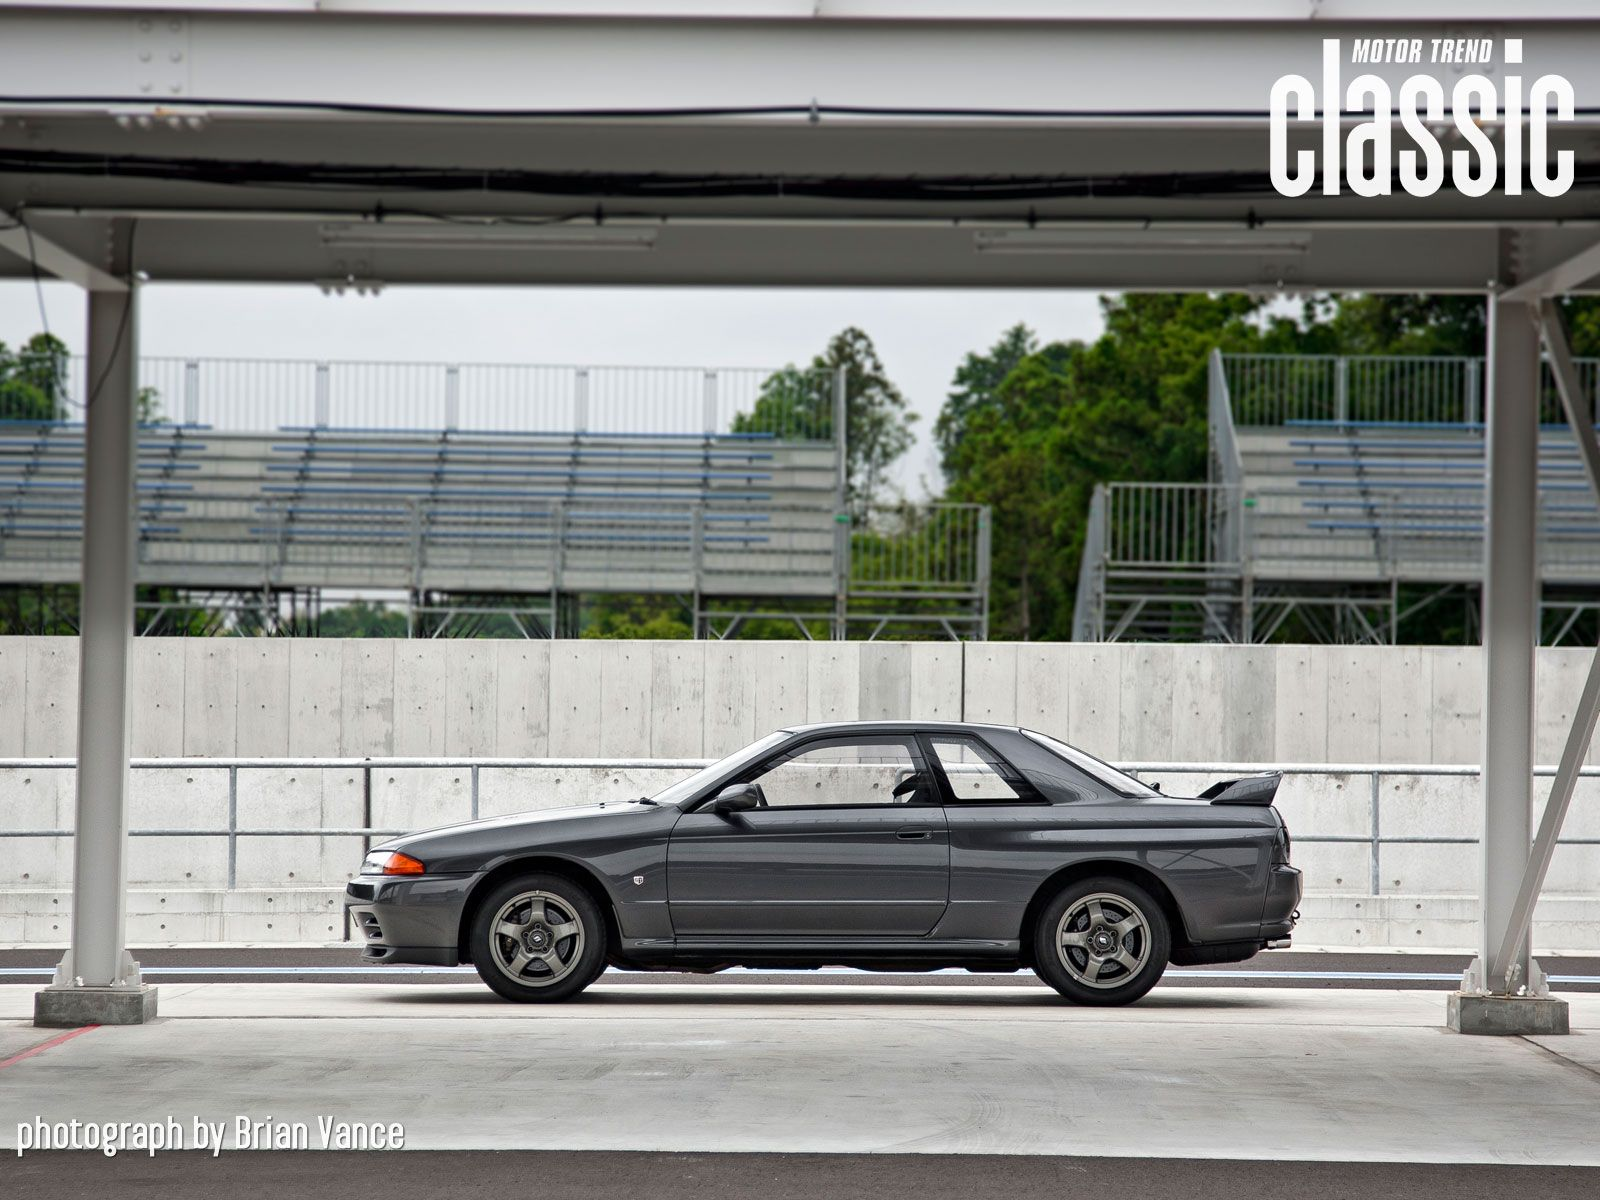 Nissan Skyline GT-R Coupe 1993